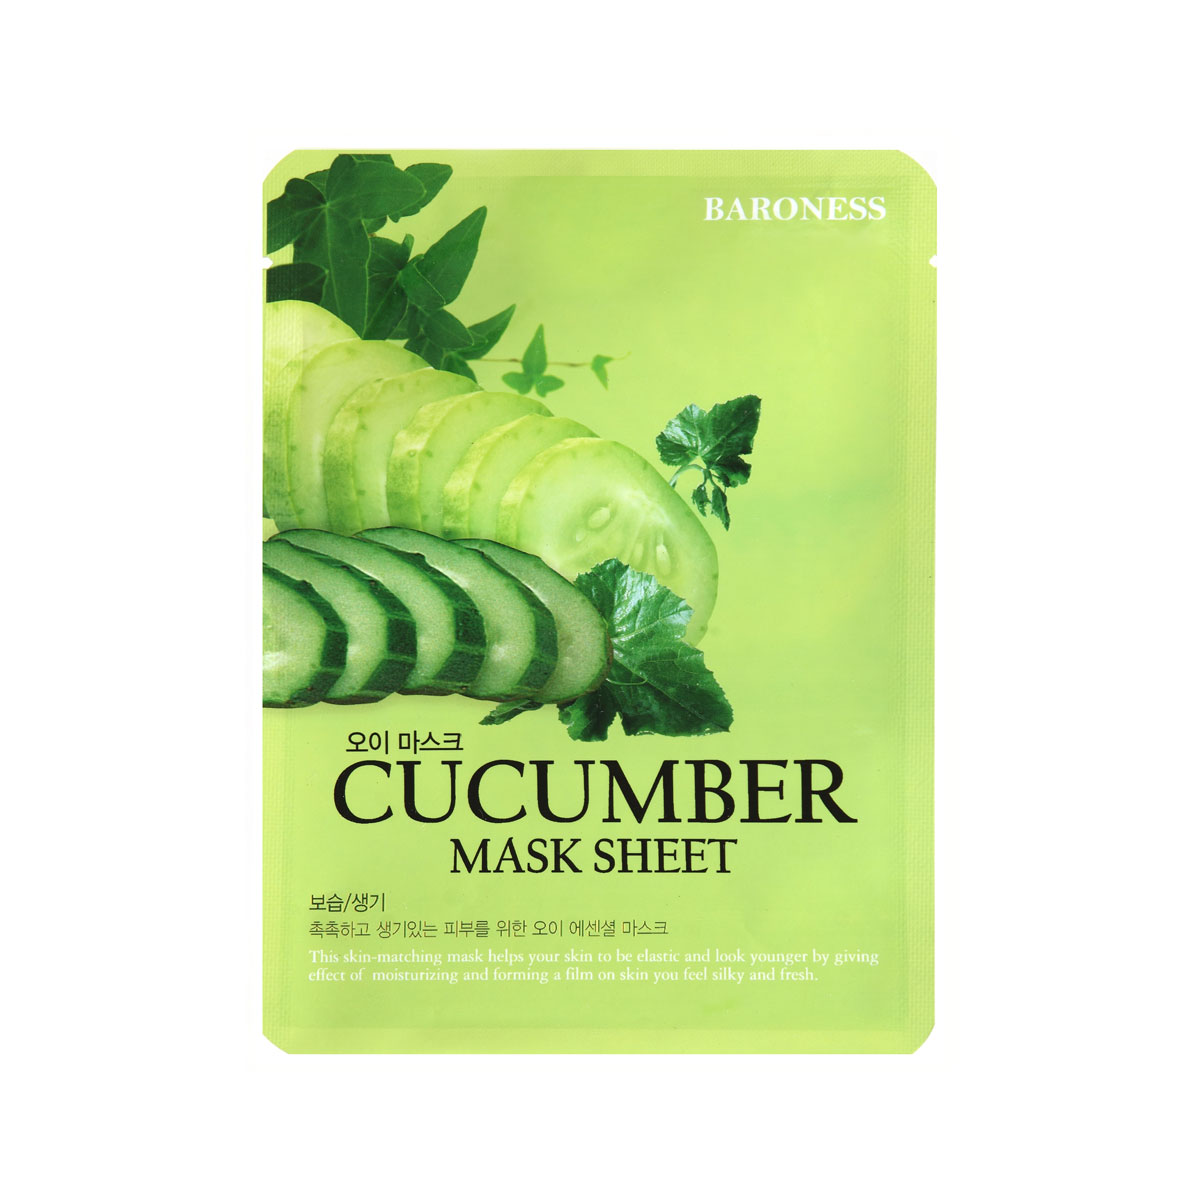 BARONESS MASK SHEET CUCUMBER